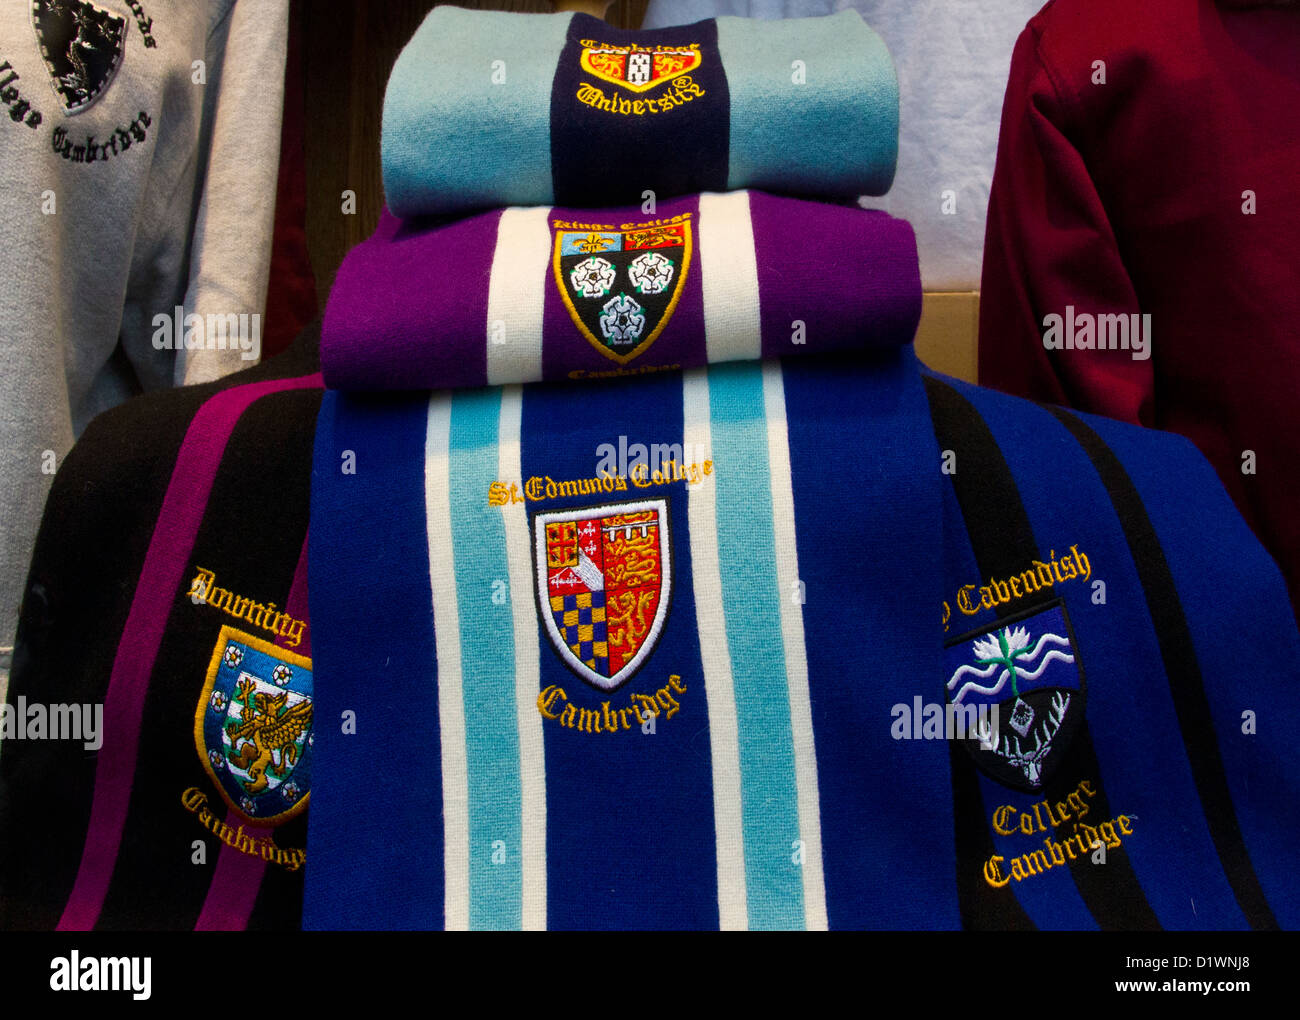 Shop display. Cambridge University Scarf Scarves and University ...